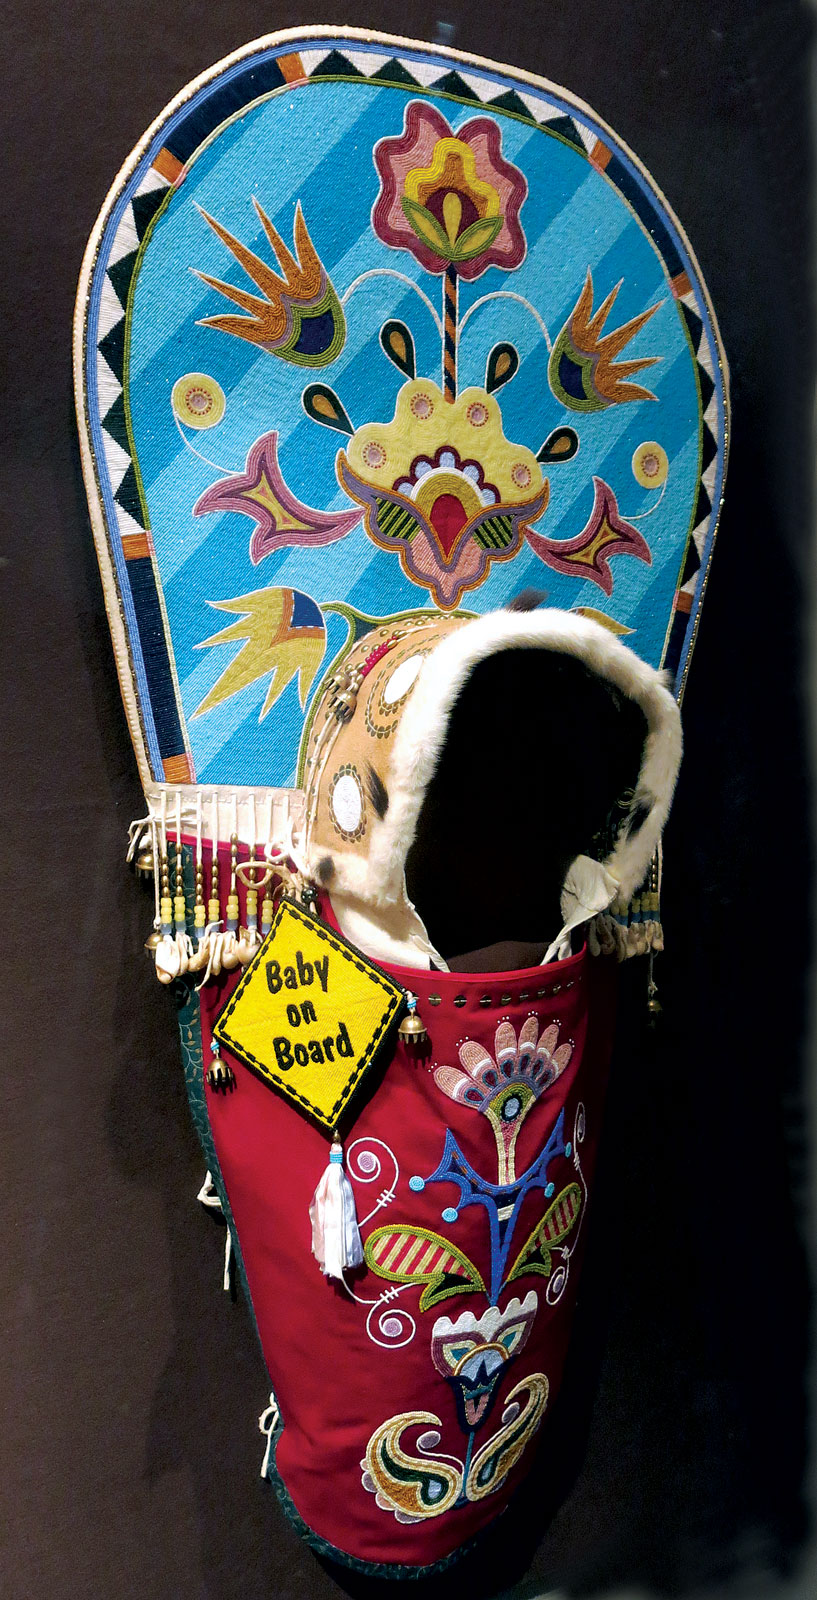 BABY ON BOARD by Jamie Okuma (Luiseño/Shoshone-Bannock), 132.1 x 55.9 centimeters, 2006.  Private Collection. Photograph by Ornament.